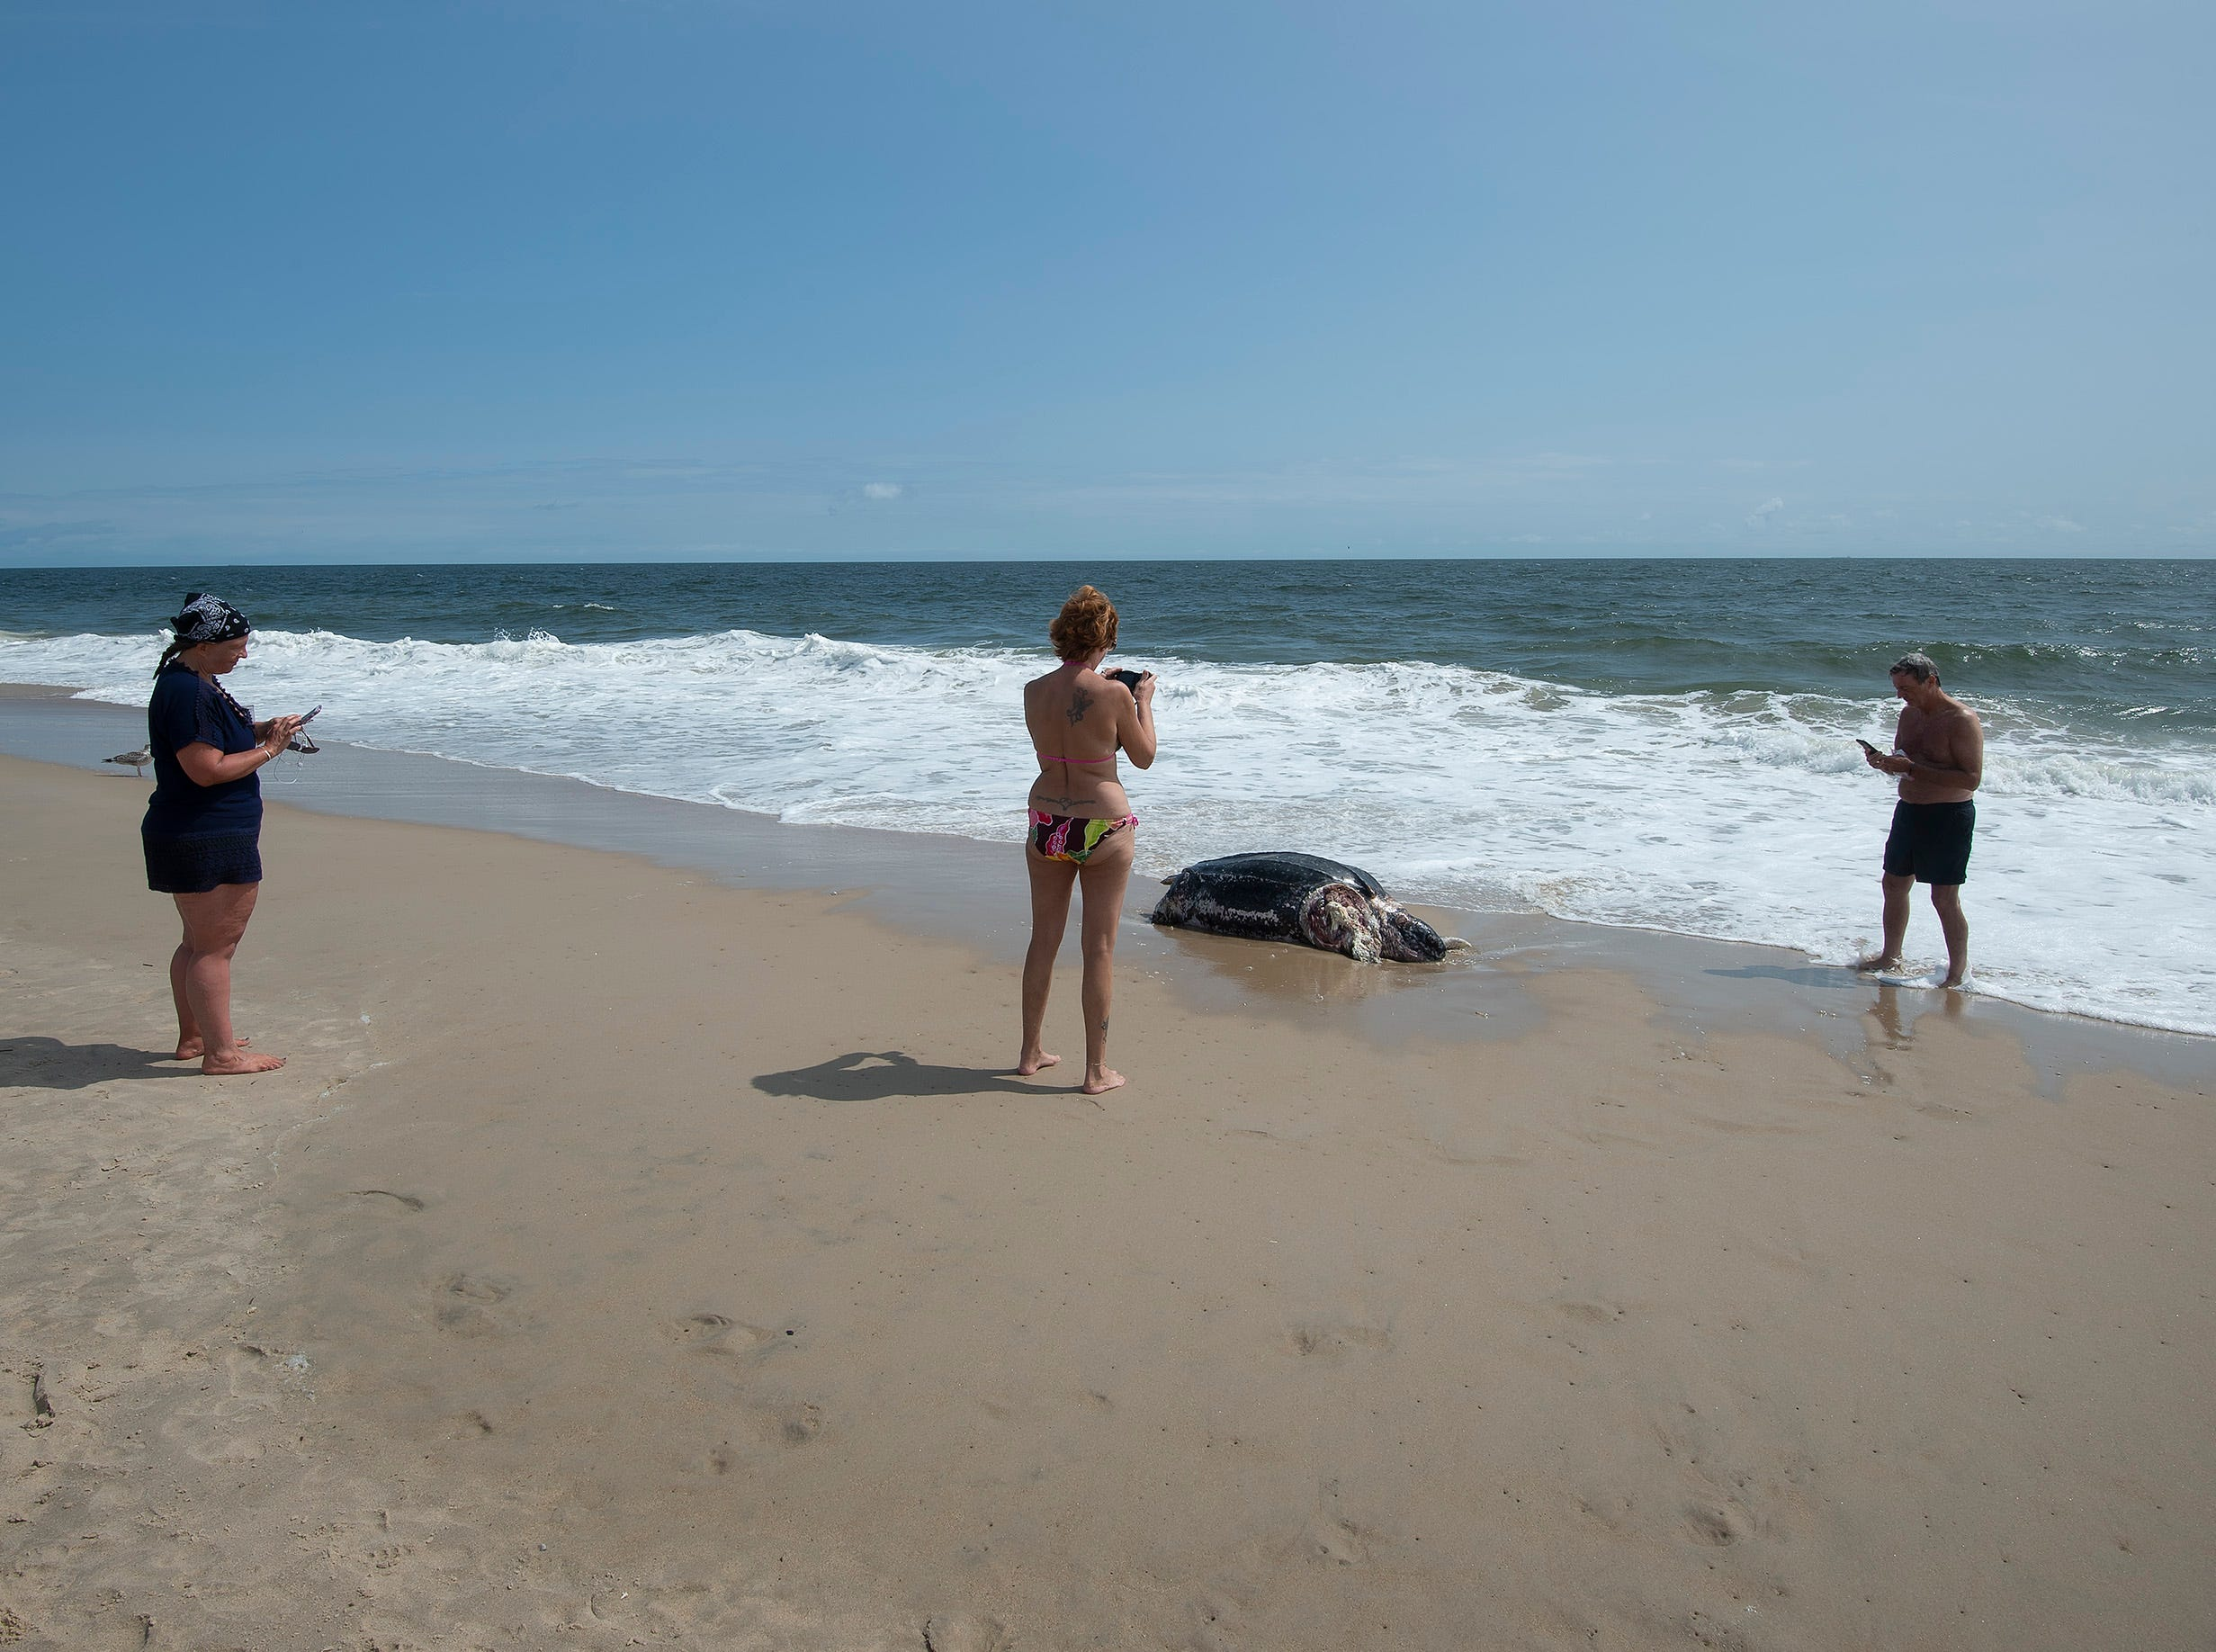 Beachgoers look at a leatherback sea turtle that washed up along the Delaware Seashore State Park Beach, Tower Road south of Dewey Beach.